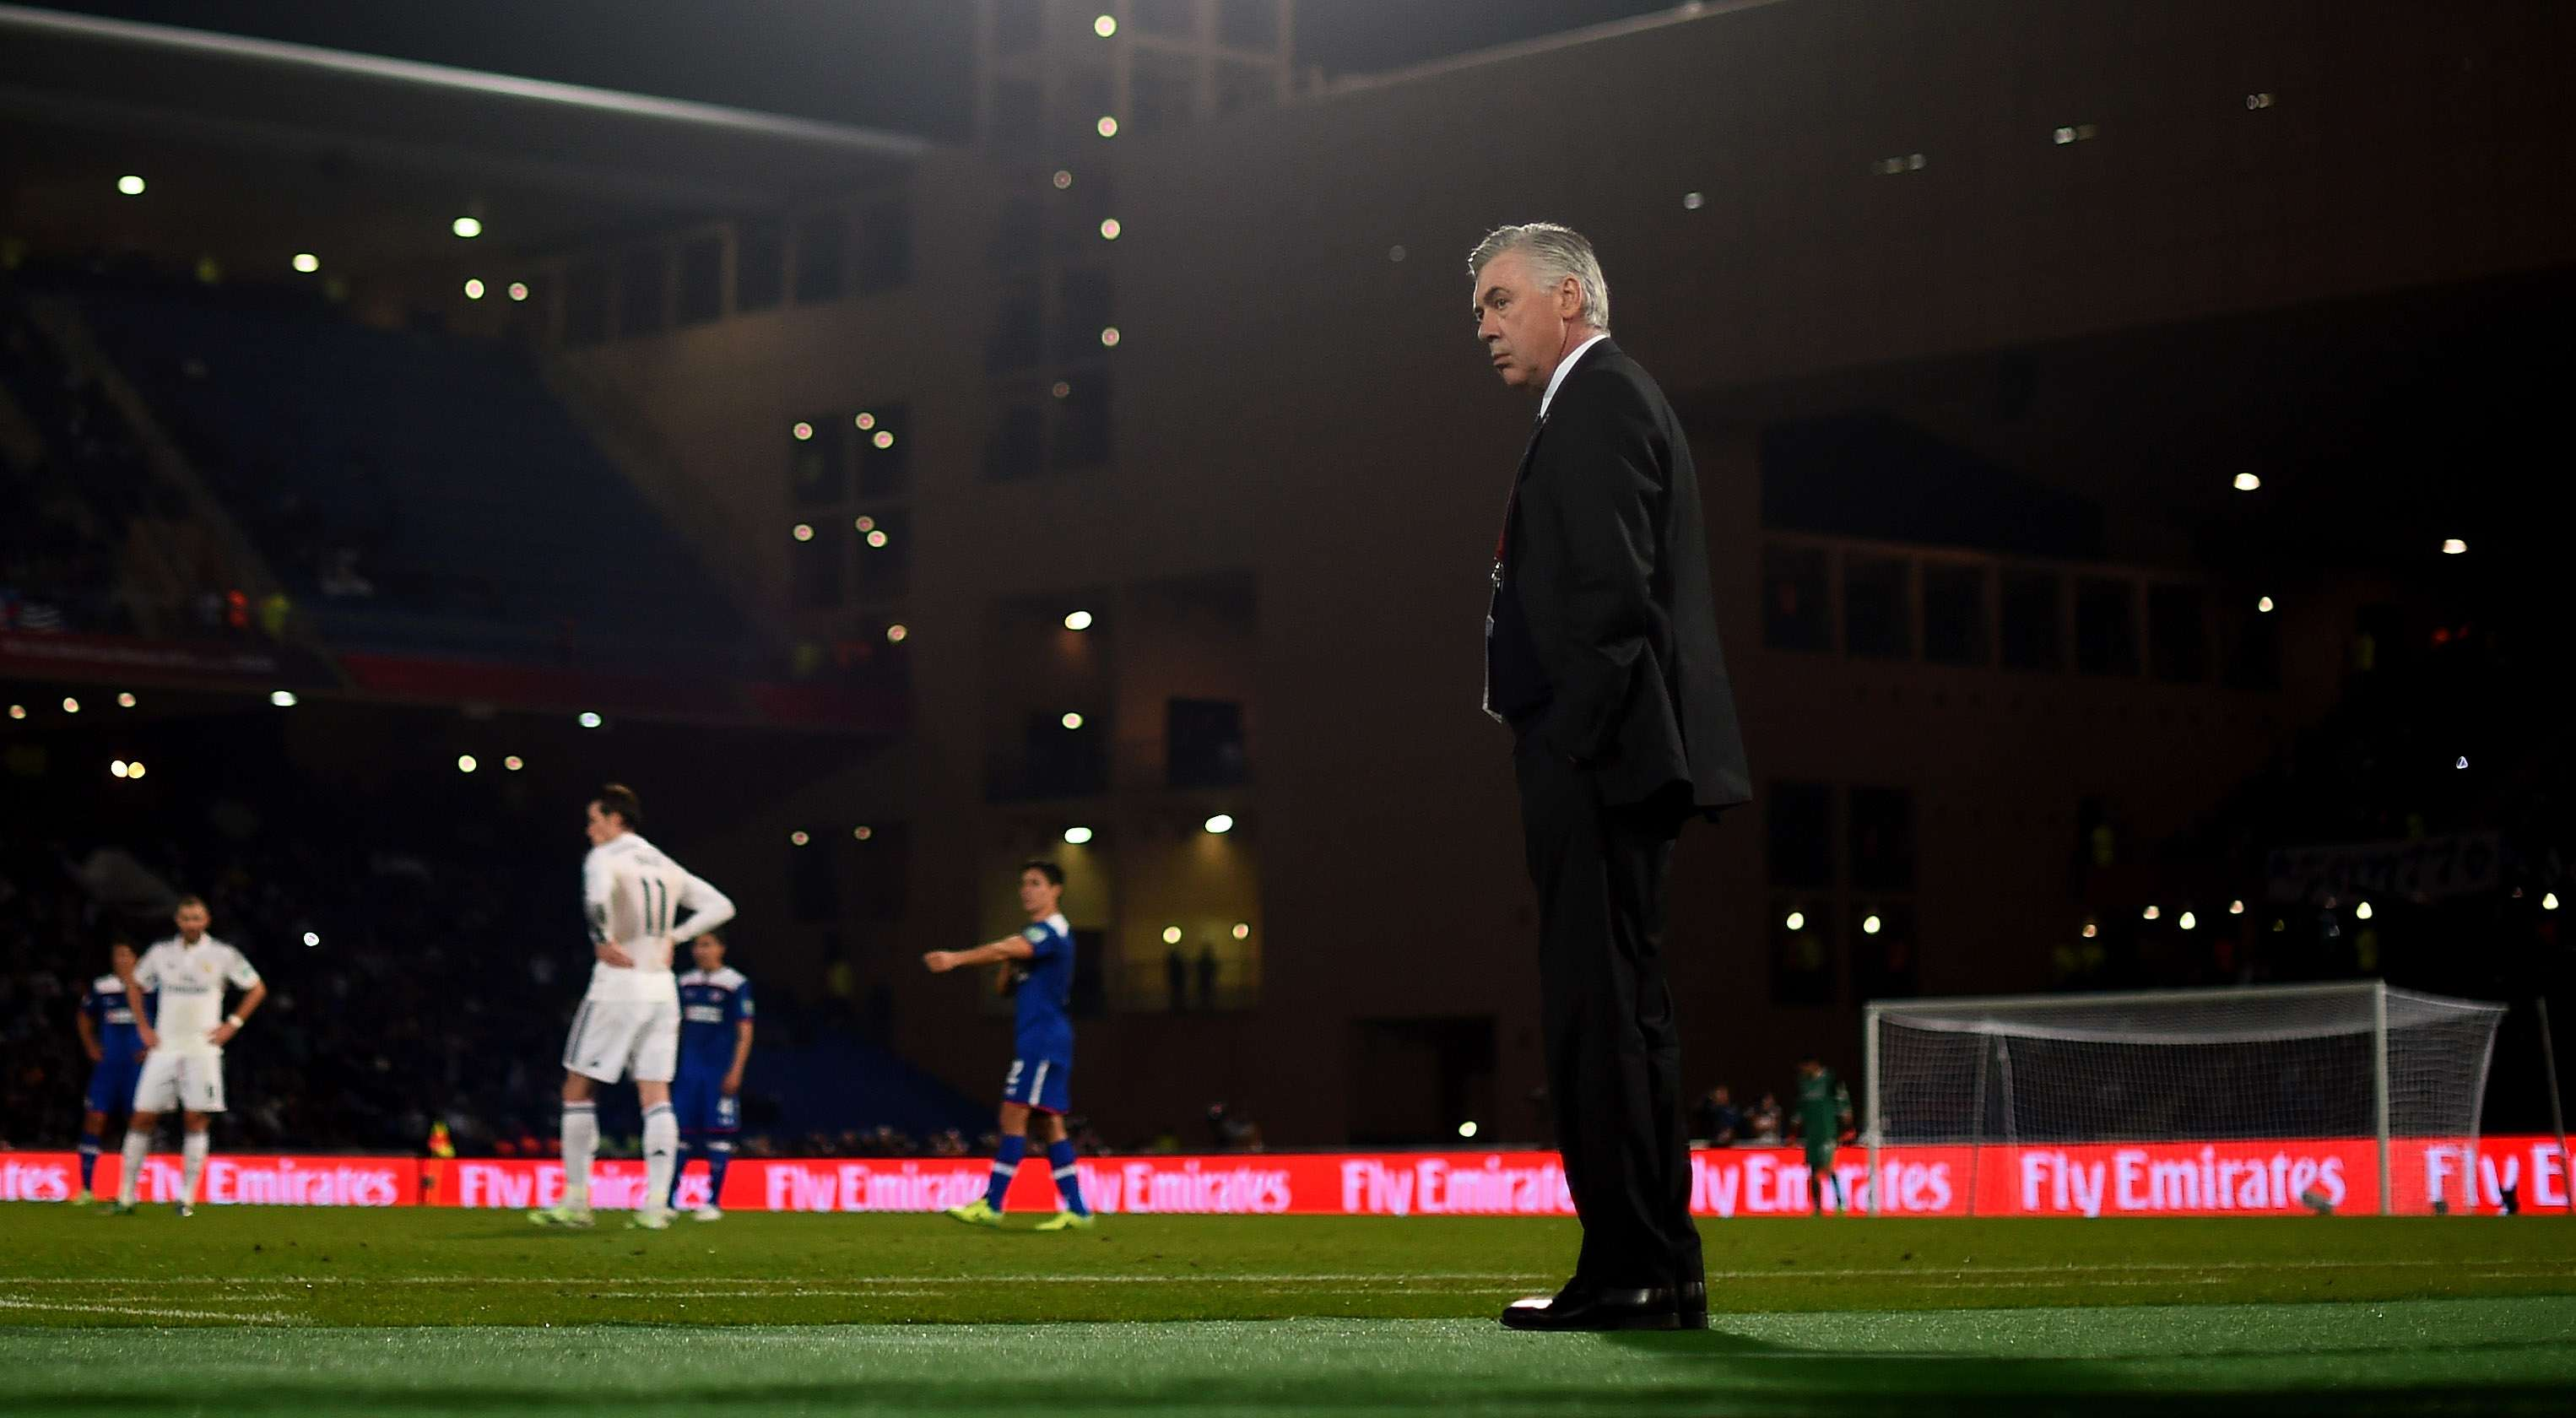 Ancelotti ve campeón al Real Madrid del Mundial de Clubes. Foto: Getty Images